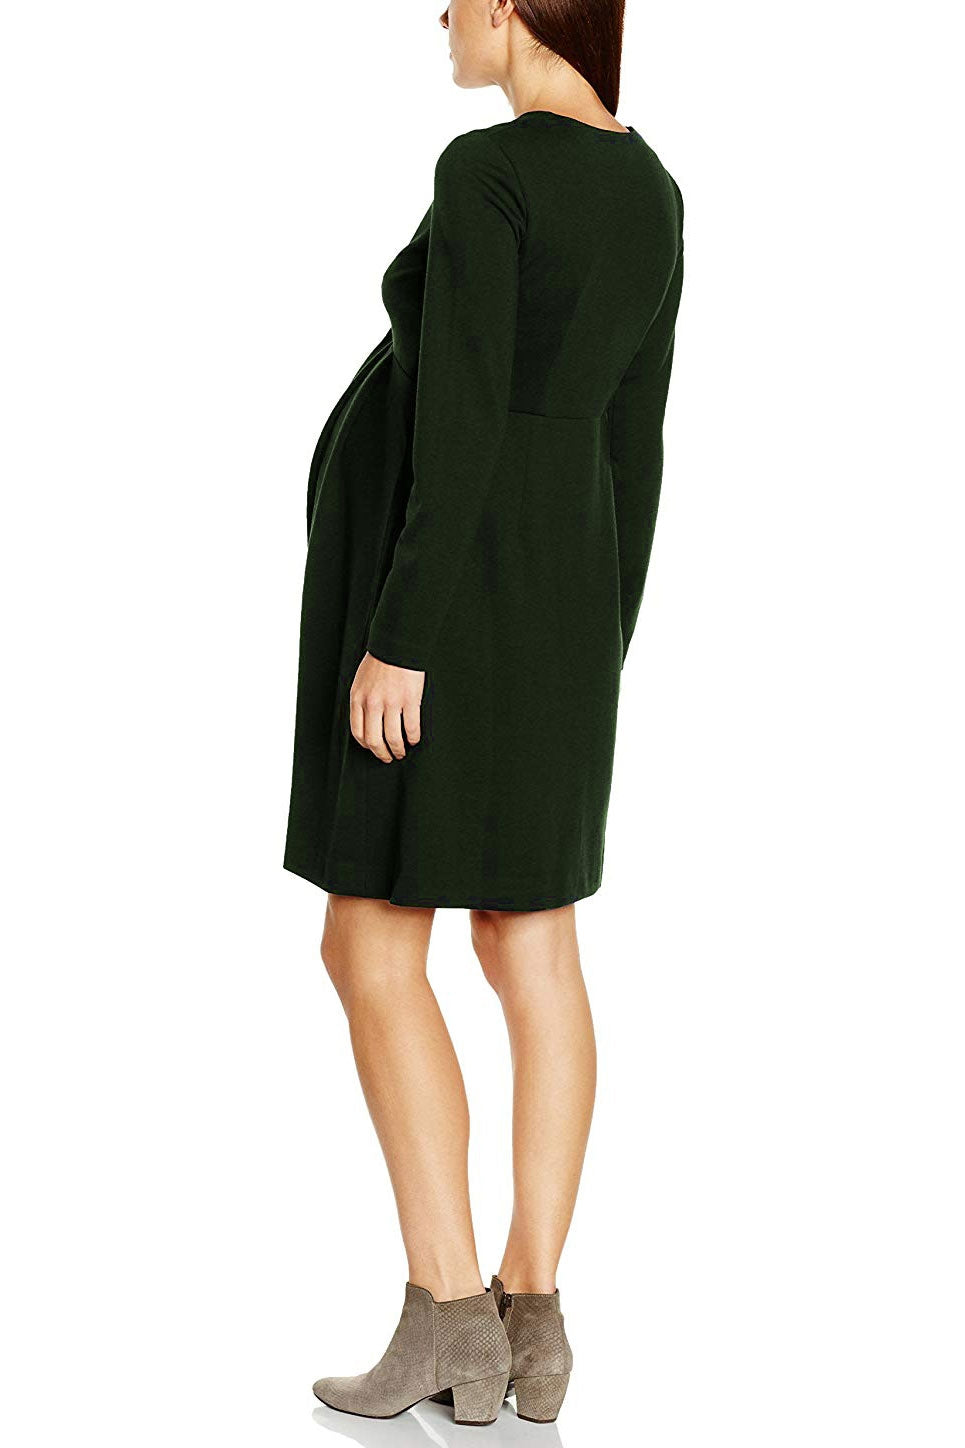 Pietro Brunelli San Diego Ponti Maternity Shift Dress - Seven Women Maternity